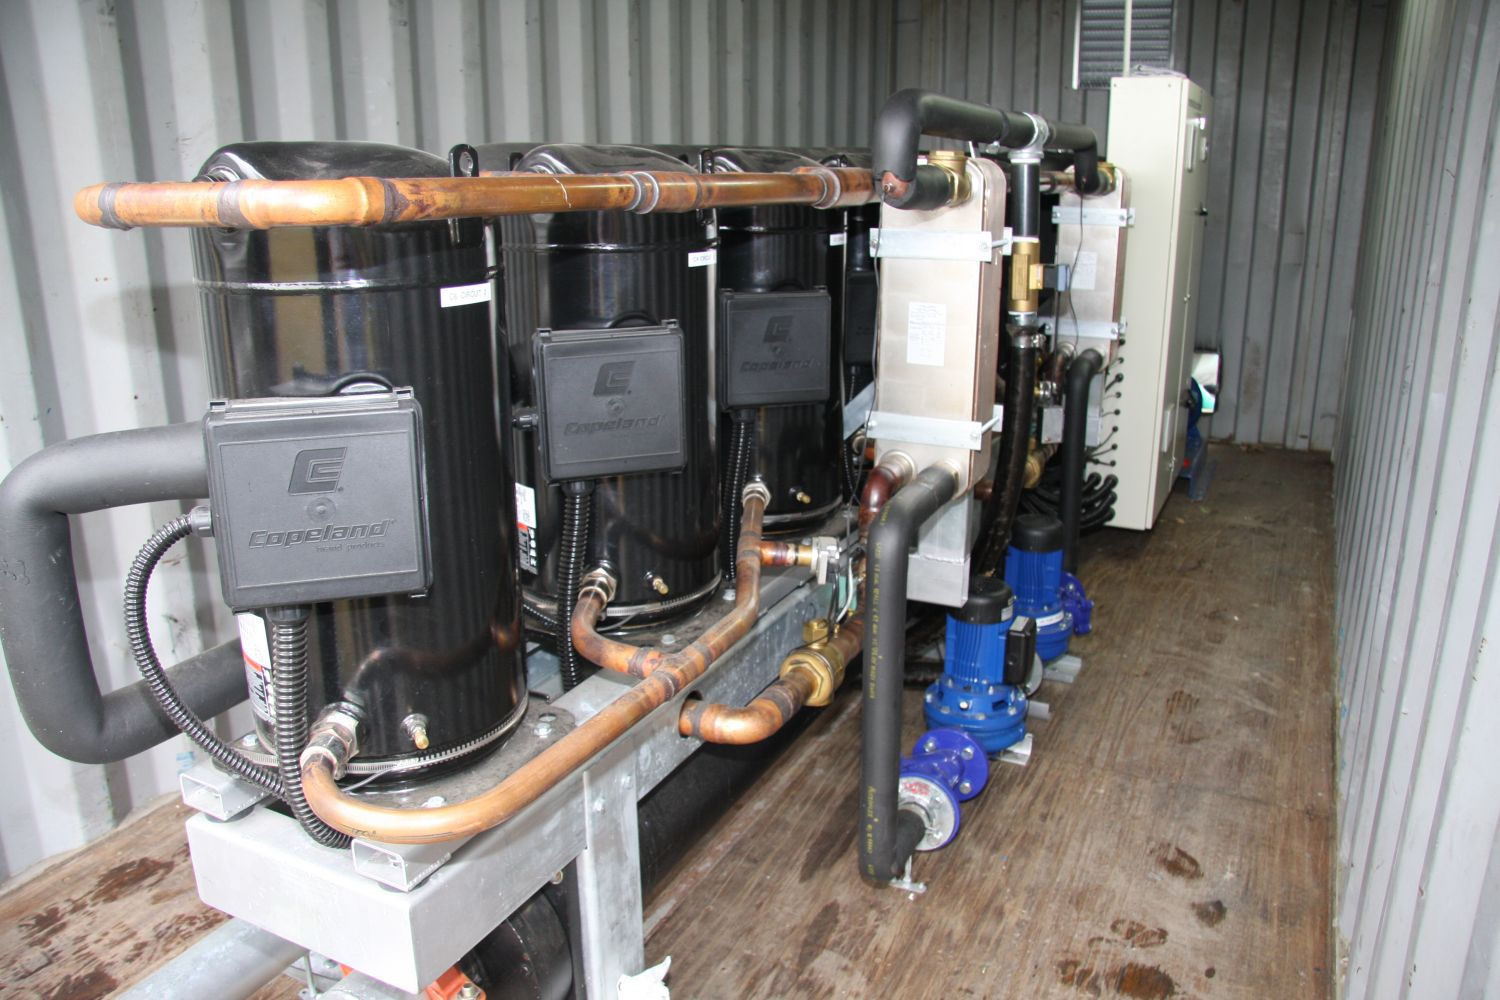 View of installed heating system